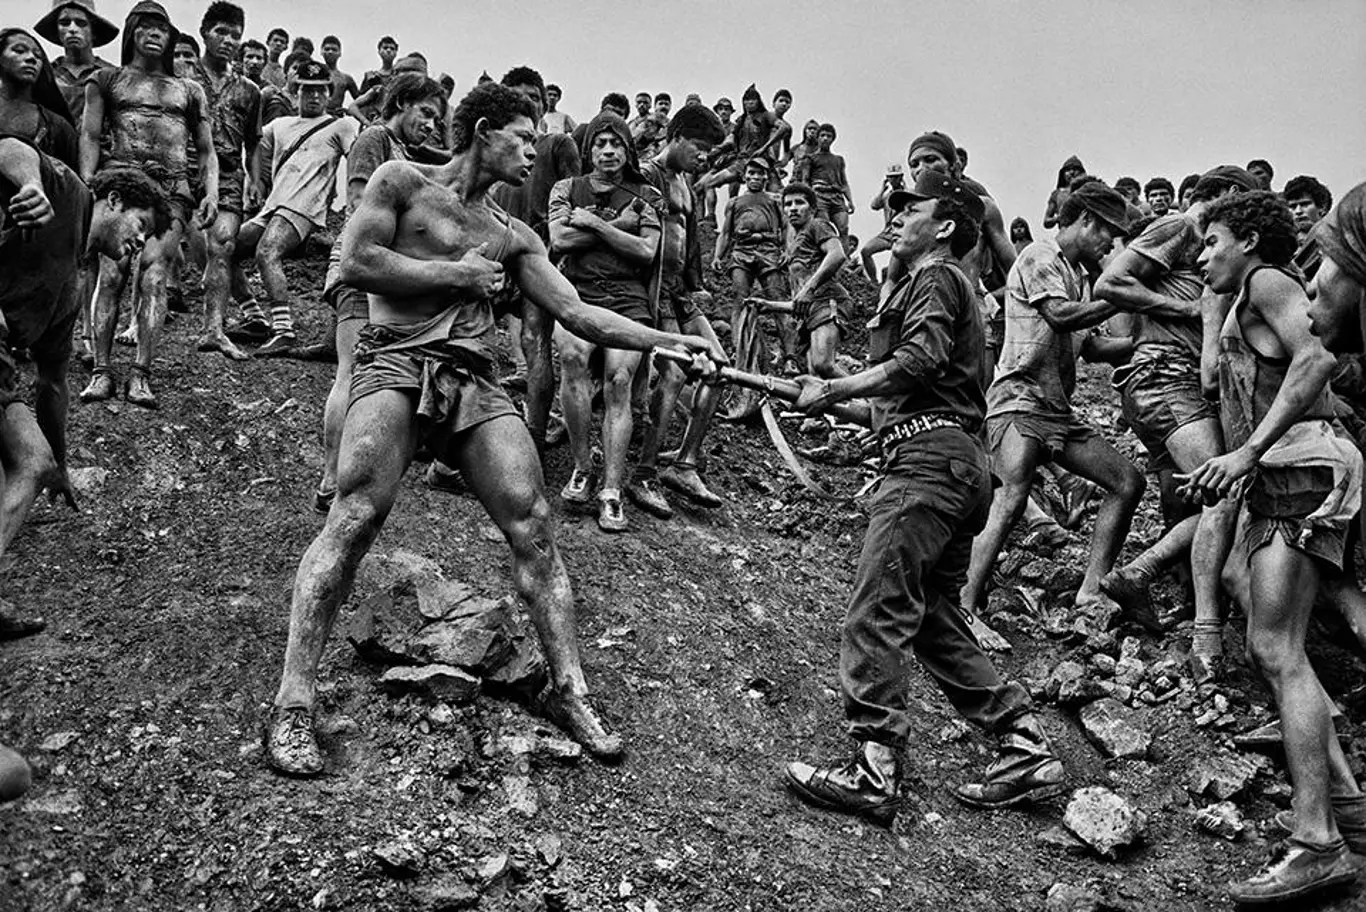 A black and white image of two men who appear to be arguing, by famous photographer Sebastião Salgado